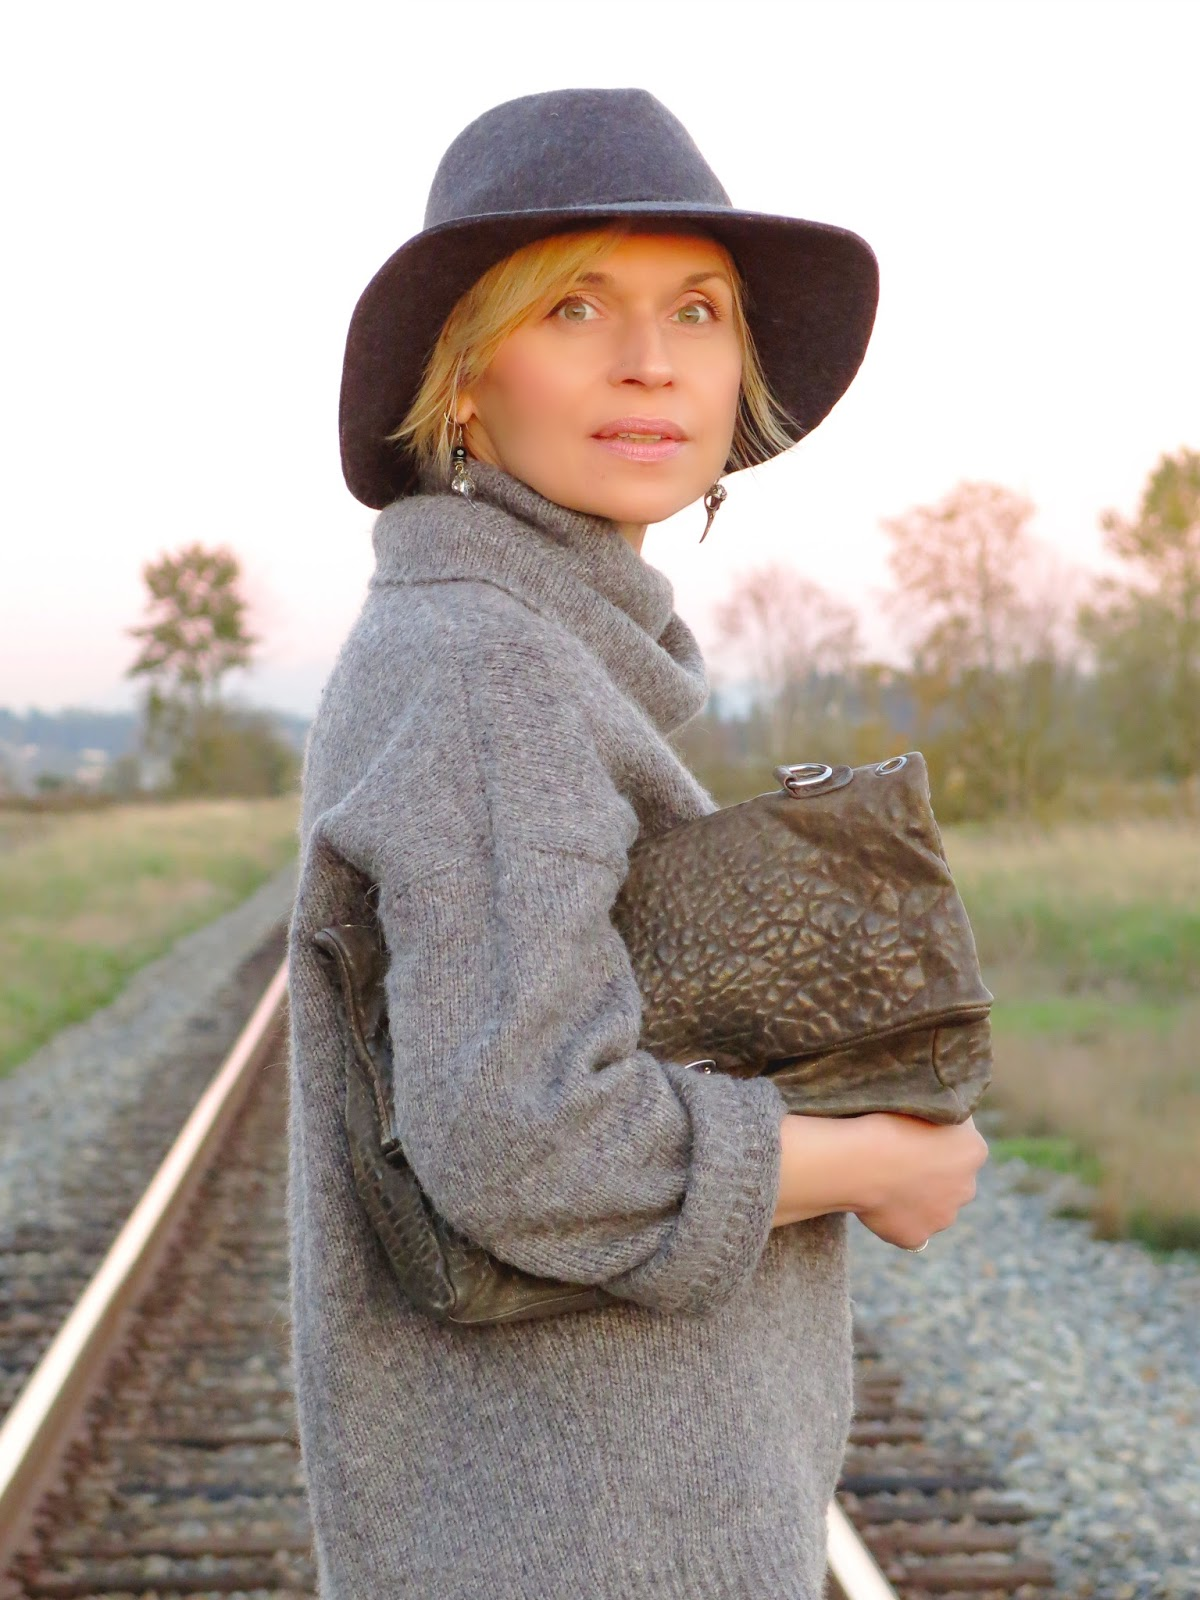 oversized turtleneck sweater, pebble-textured satchel, and floppy hat